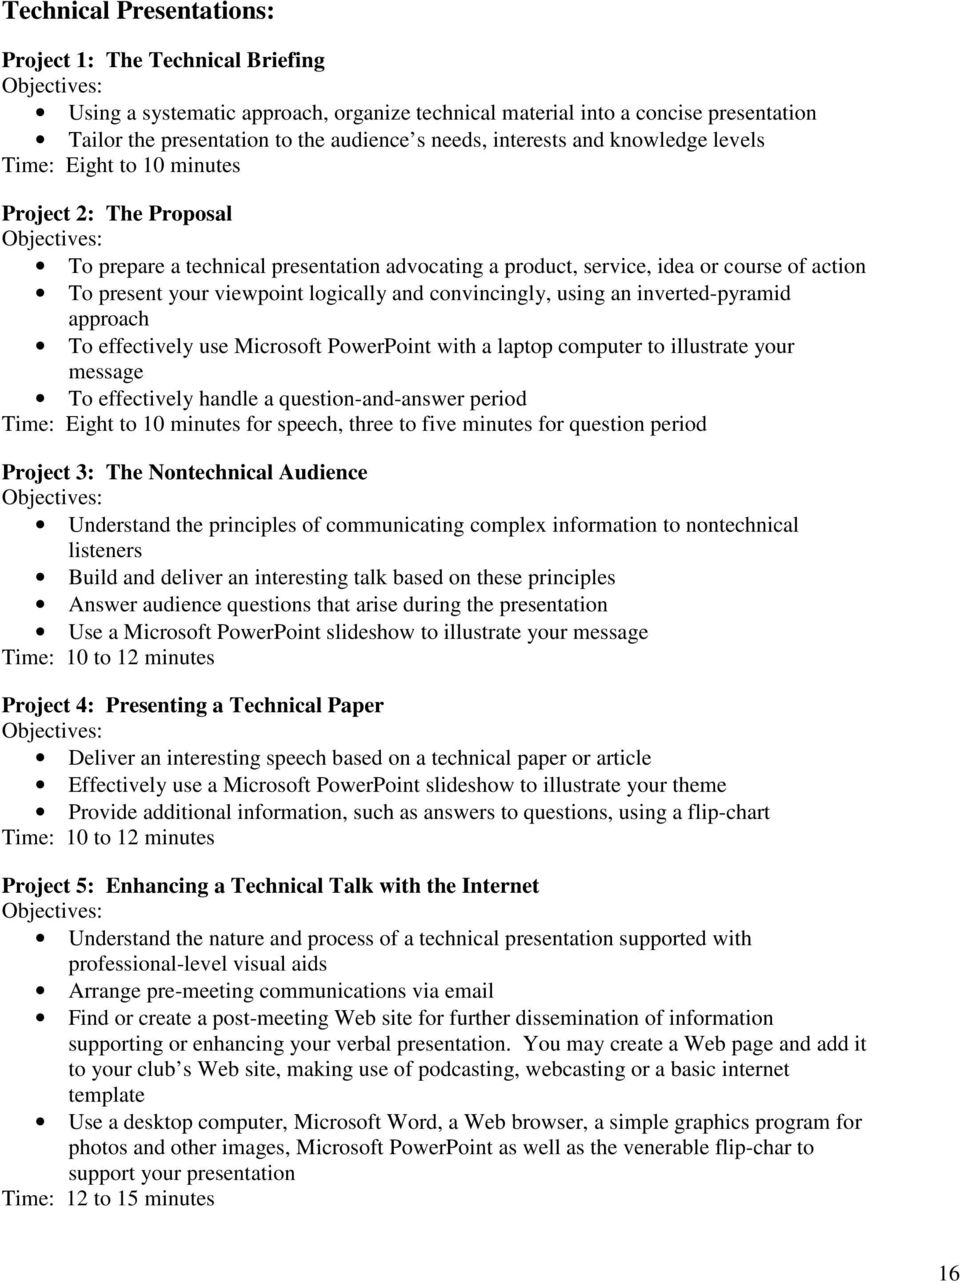 logically and convincingly, using an inverted-pyramid approach To effectively use Microsoft PowerPoint with a laptop computer to illustrate your message To effectively handle a question-and-answer